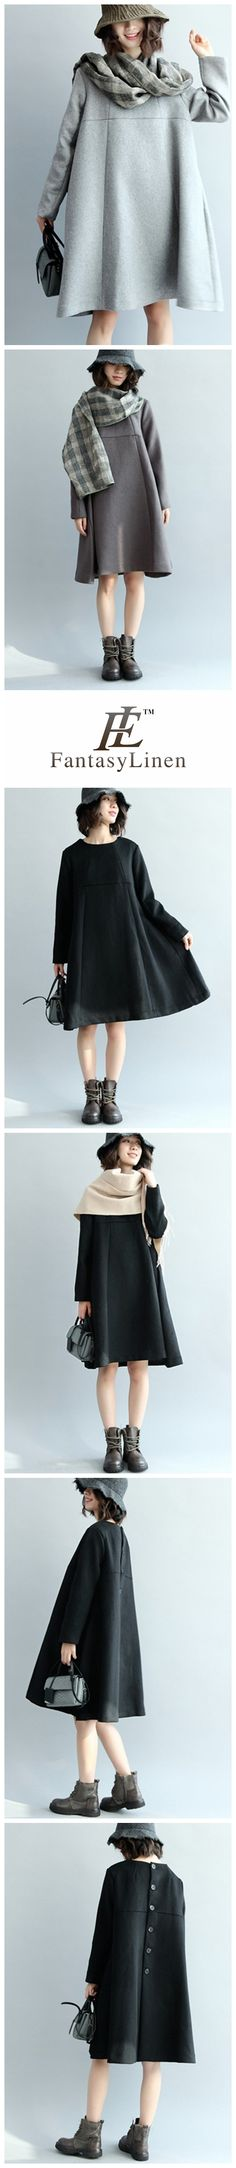 A-Style Simple Wool Dress, Long Sleeve Loose Dress Q5437  Q5437Black